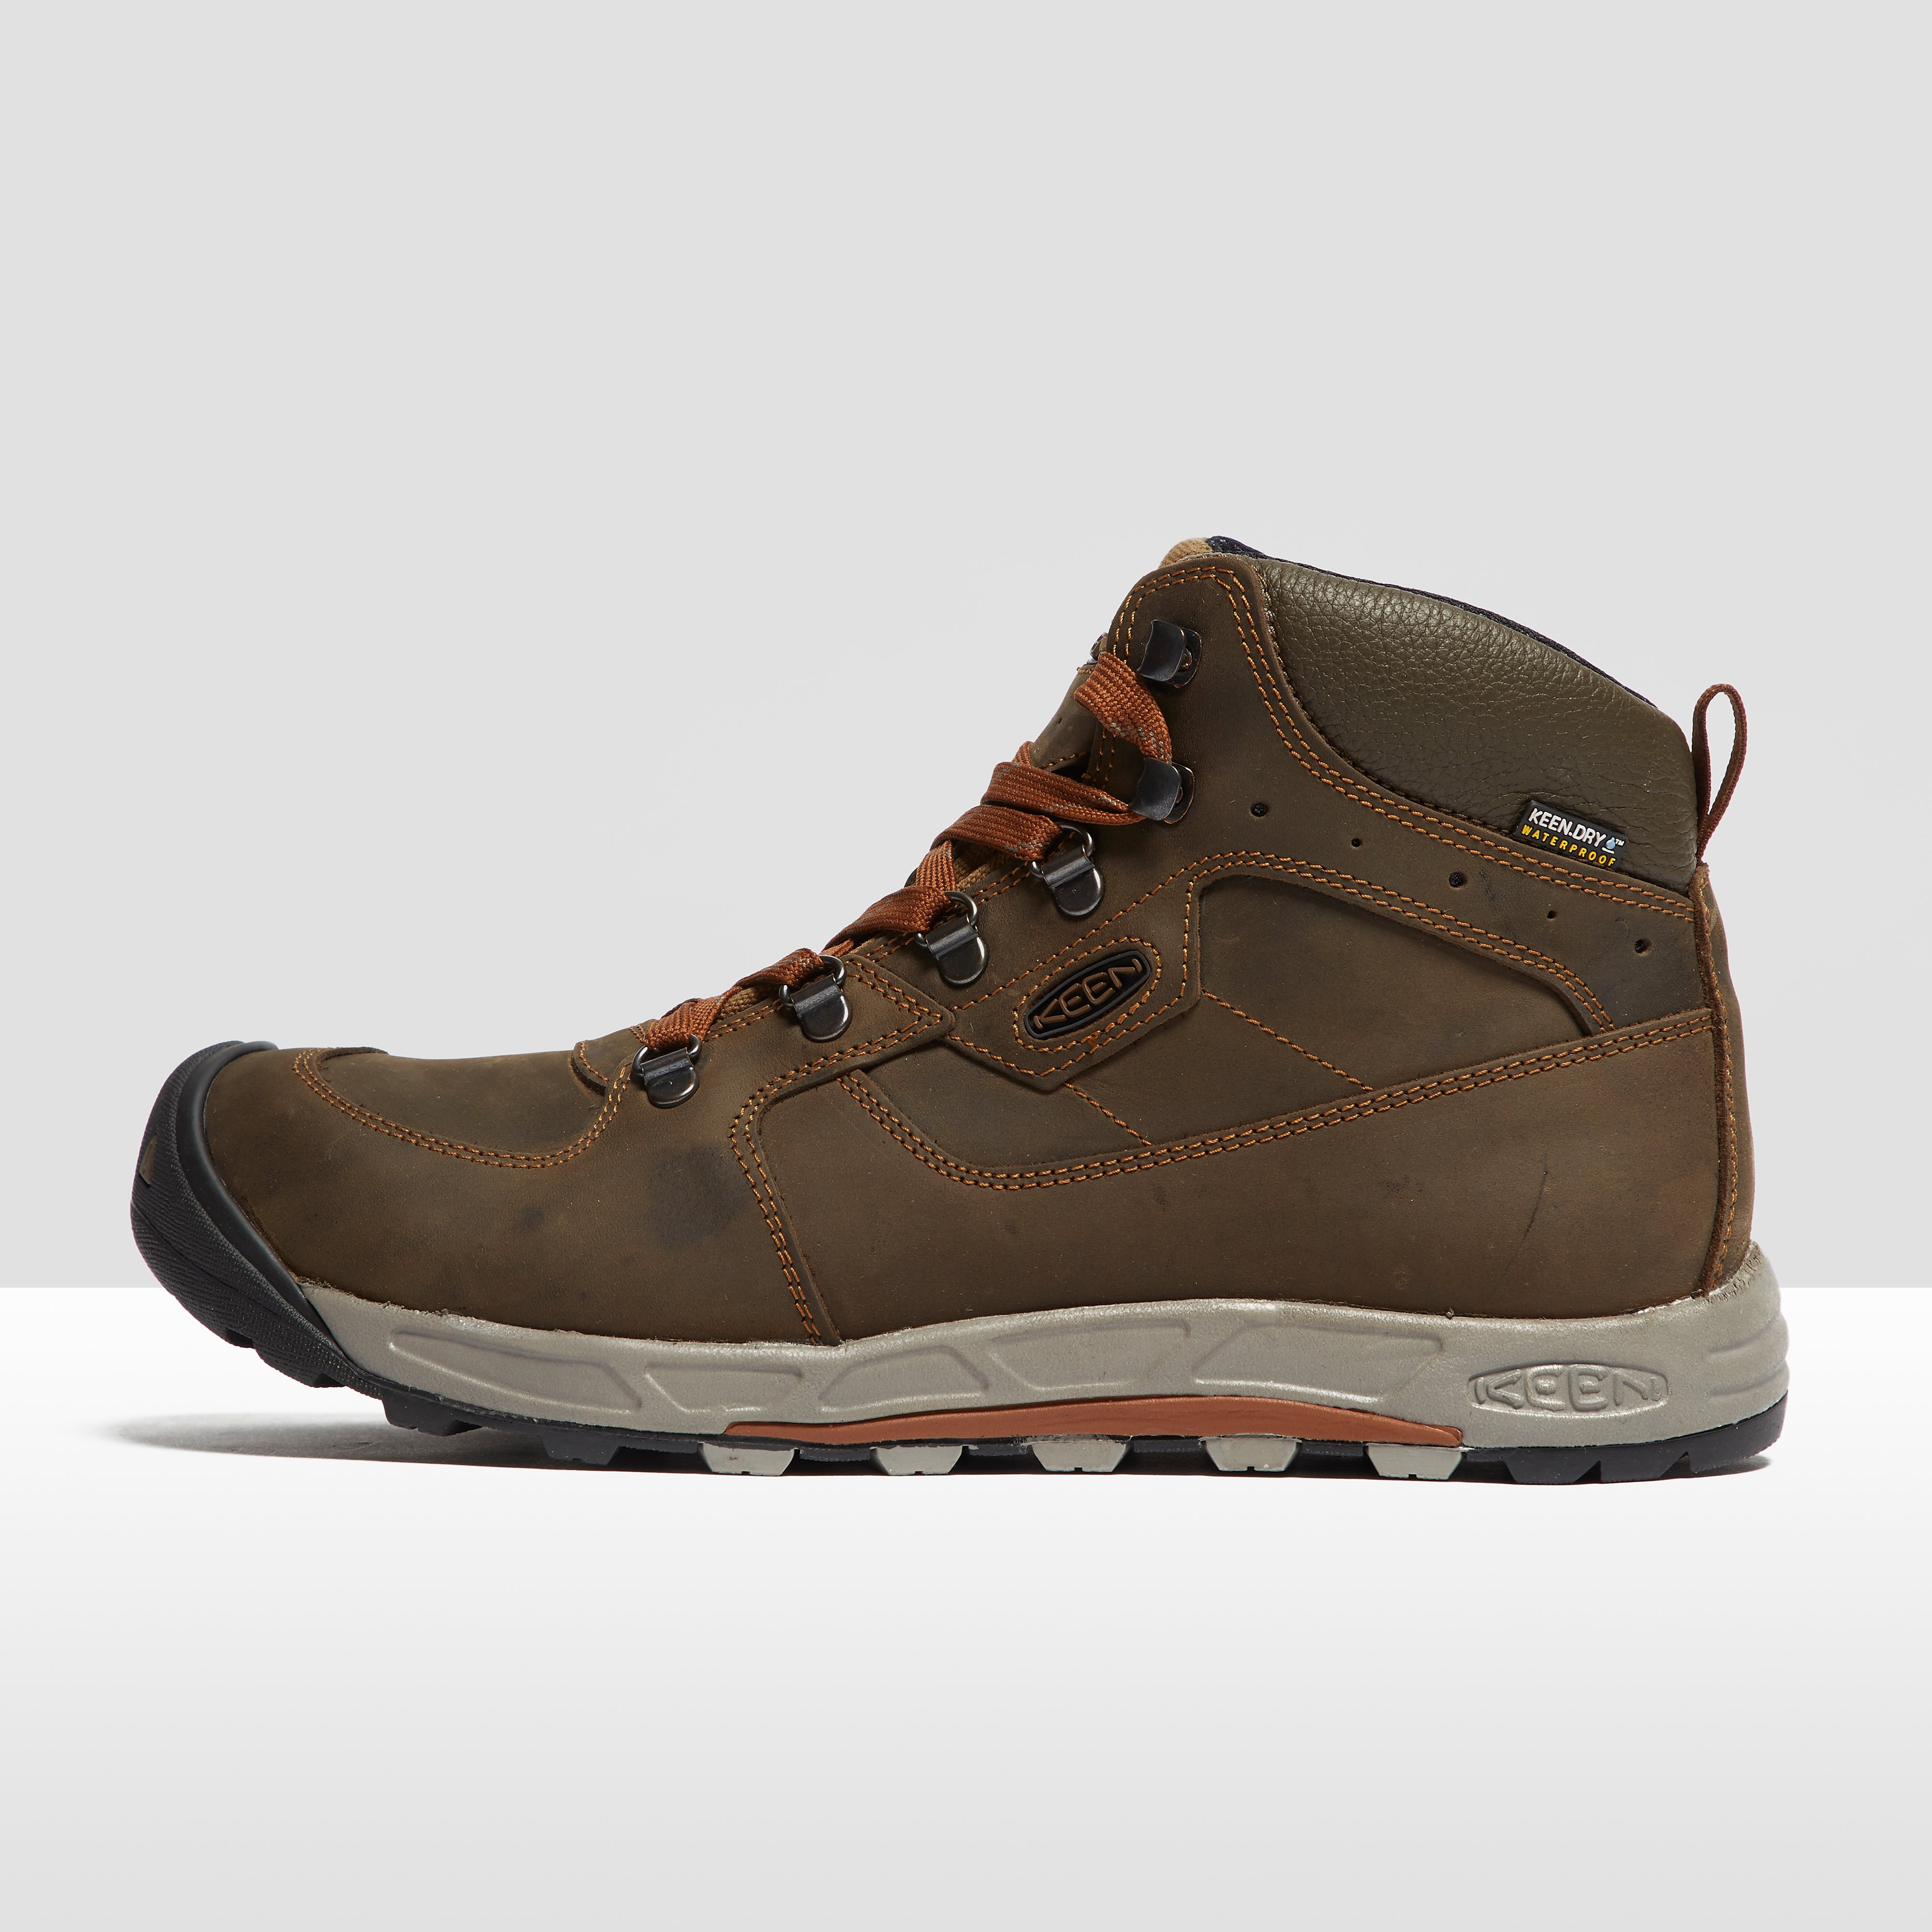 Keen Westward Leather Waterproof Men's Boots